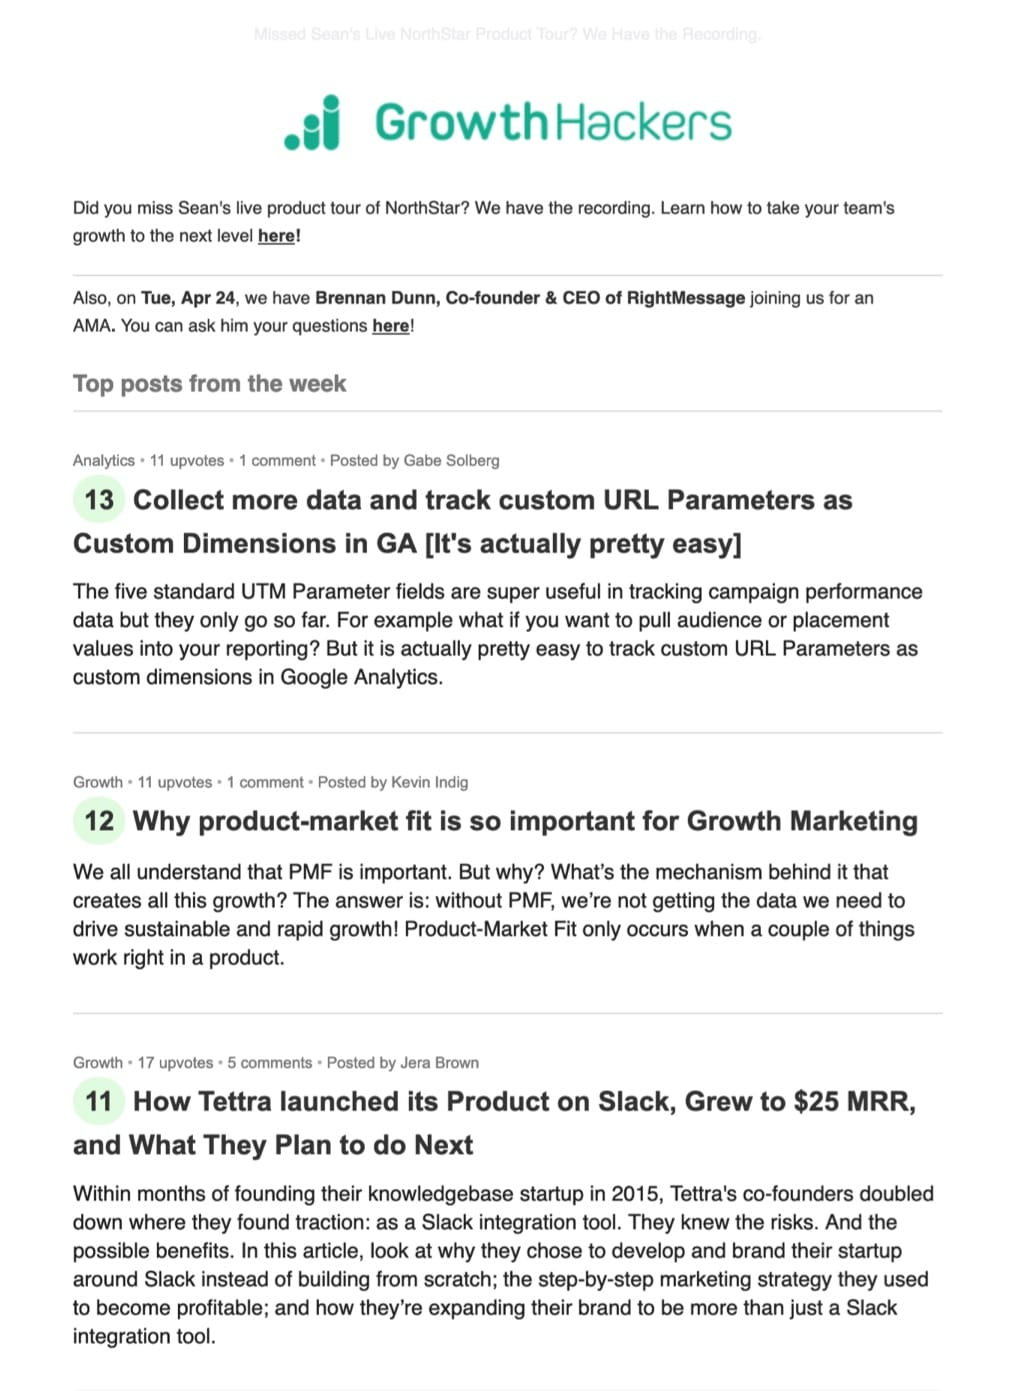 Email marketing best practices Growthhackers